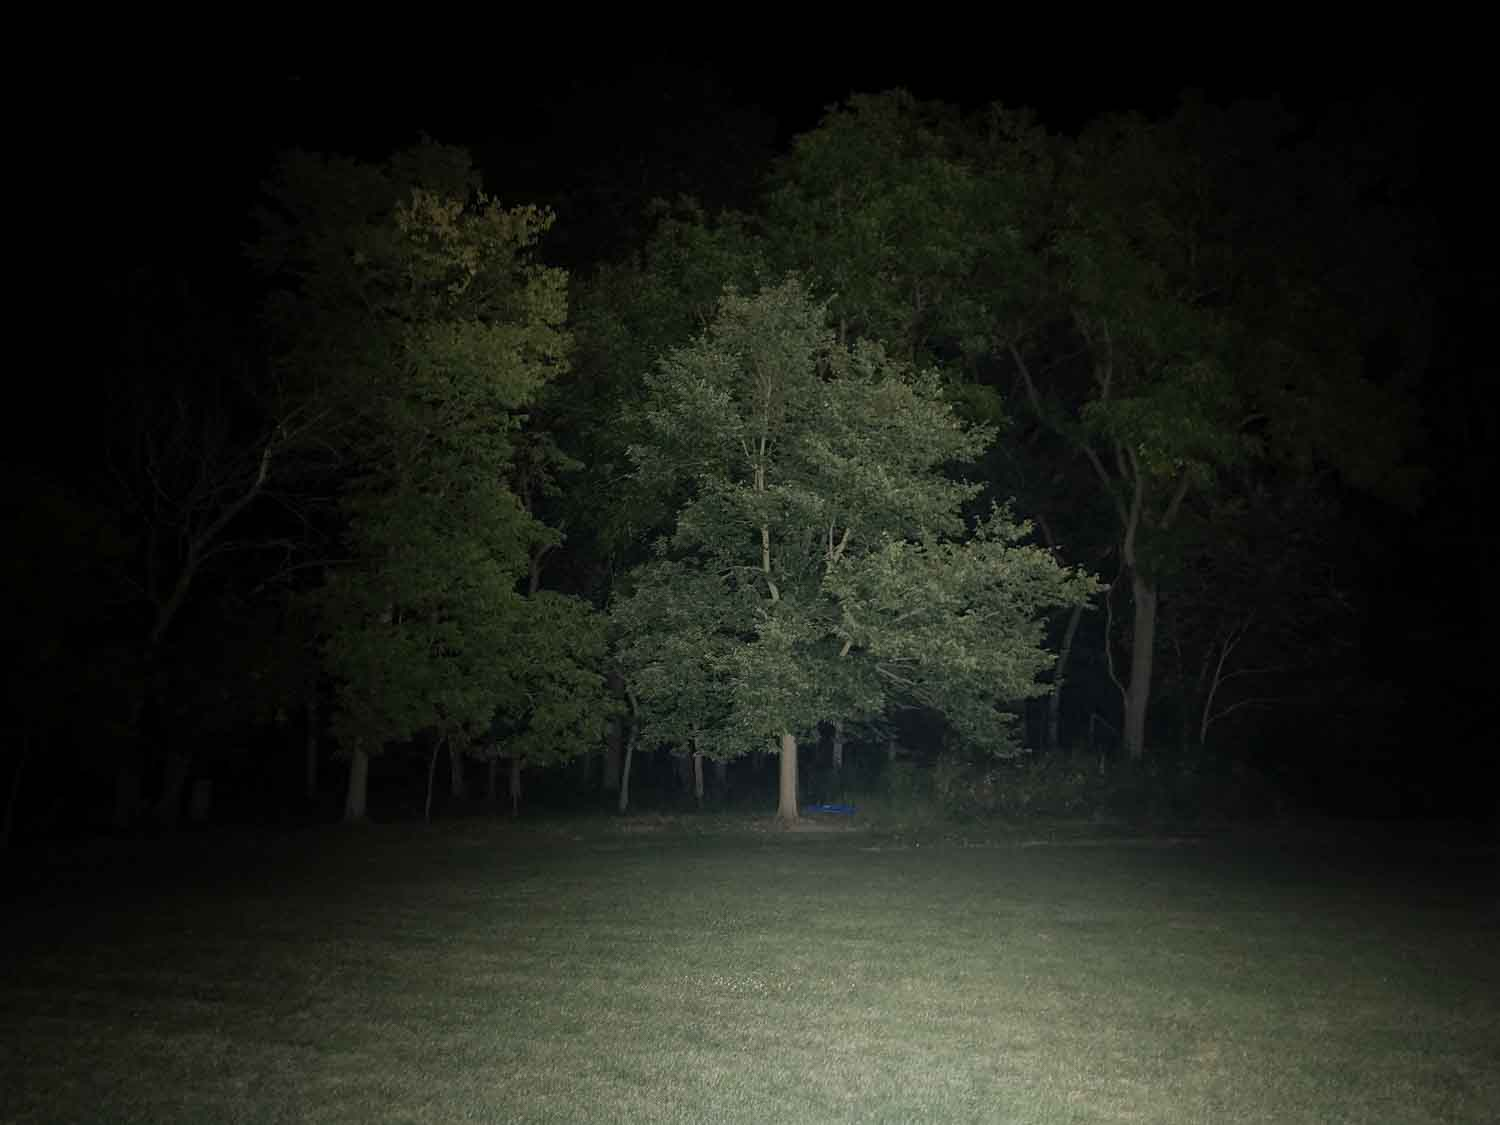 outdoor beamshot with trees